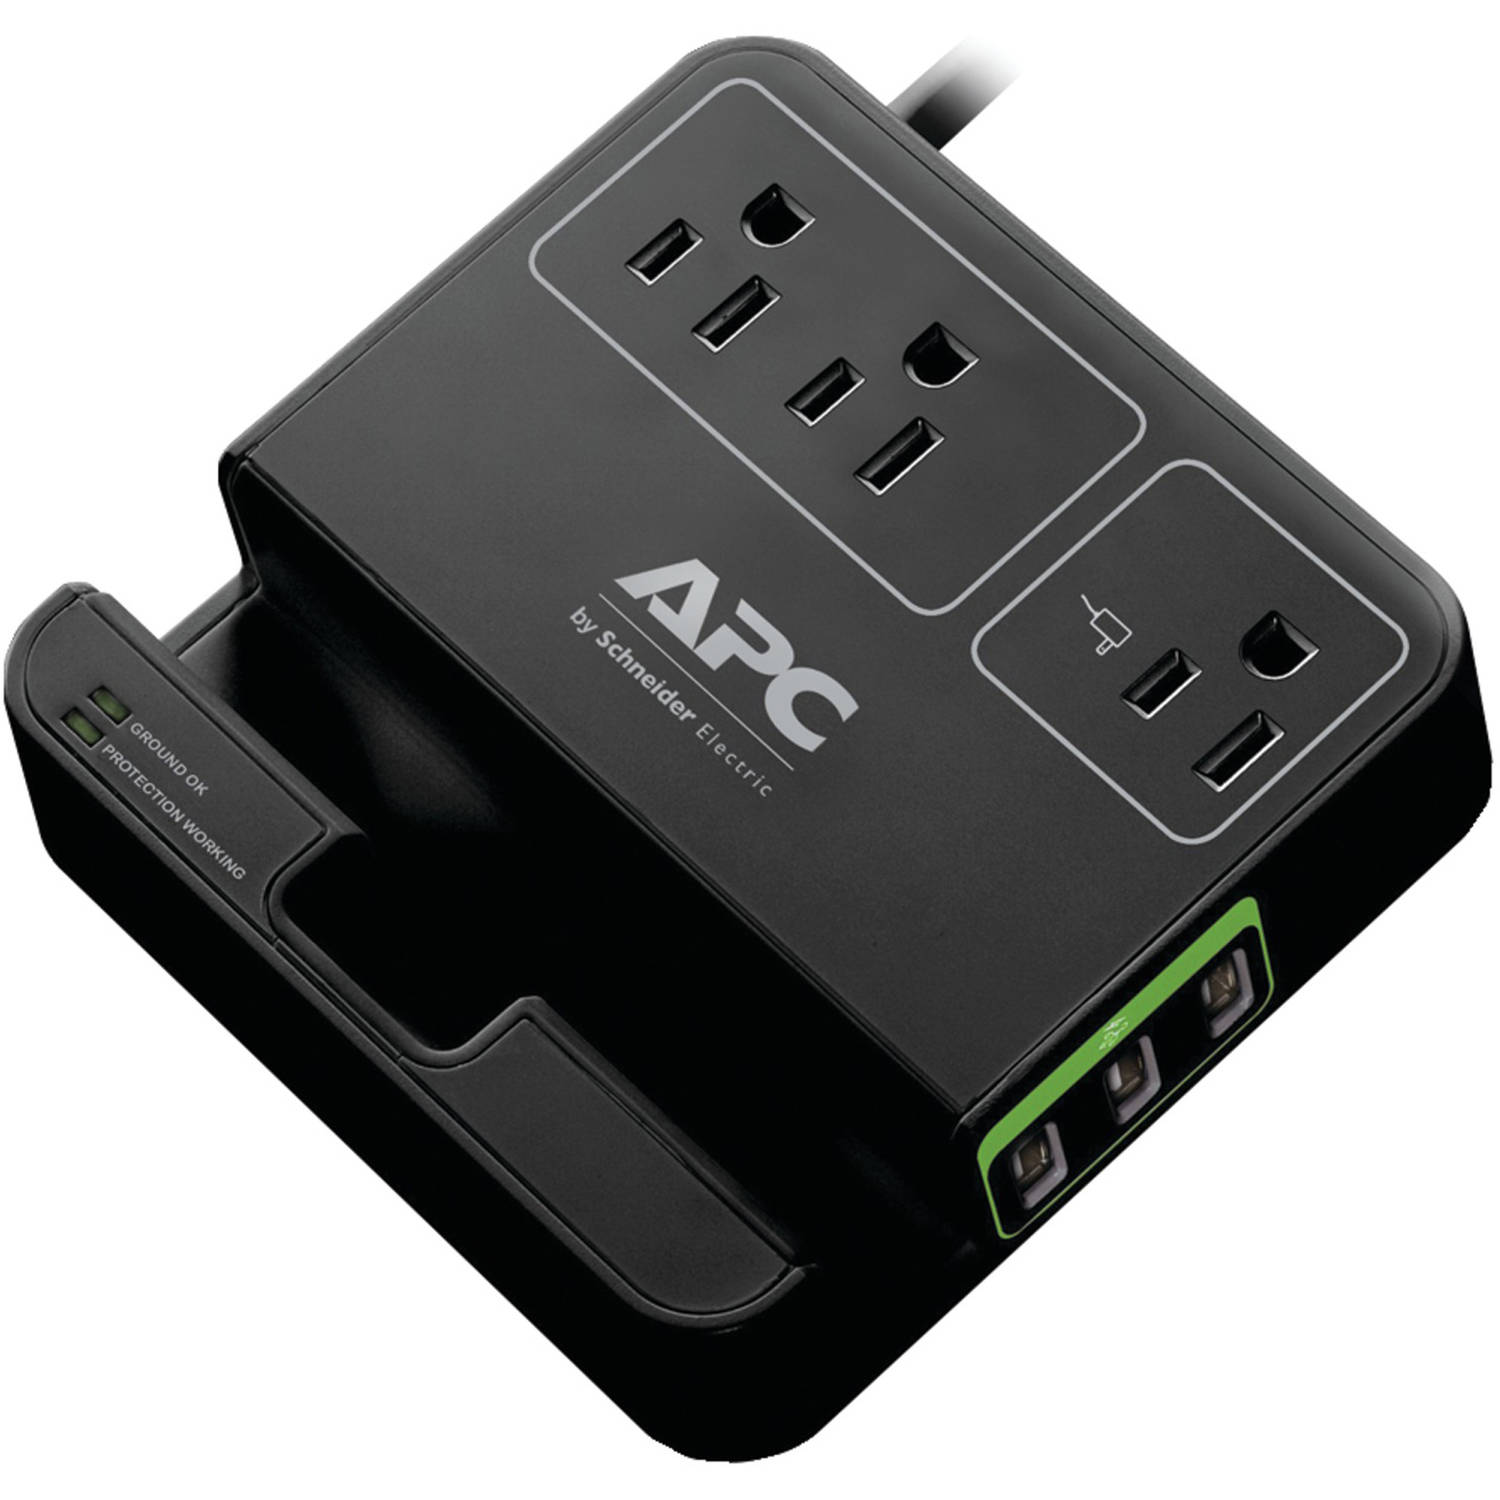 APC P3U3B 3-Outlet SurgeArrest Surge Protector with 3 USB Ports, Black